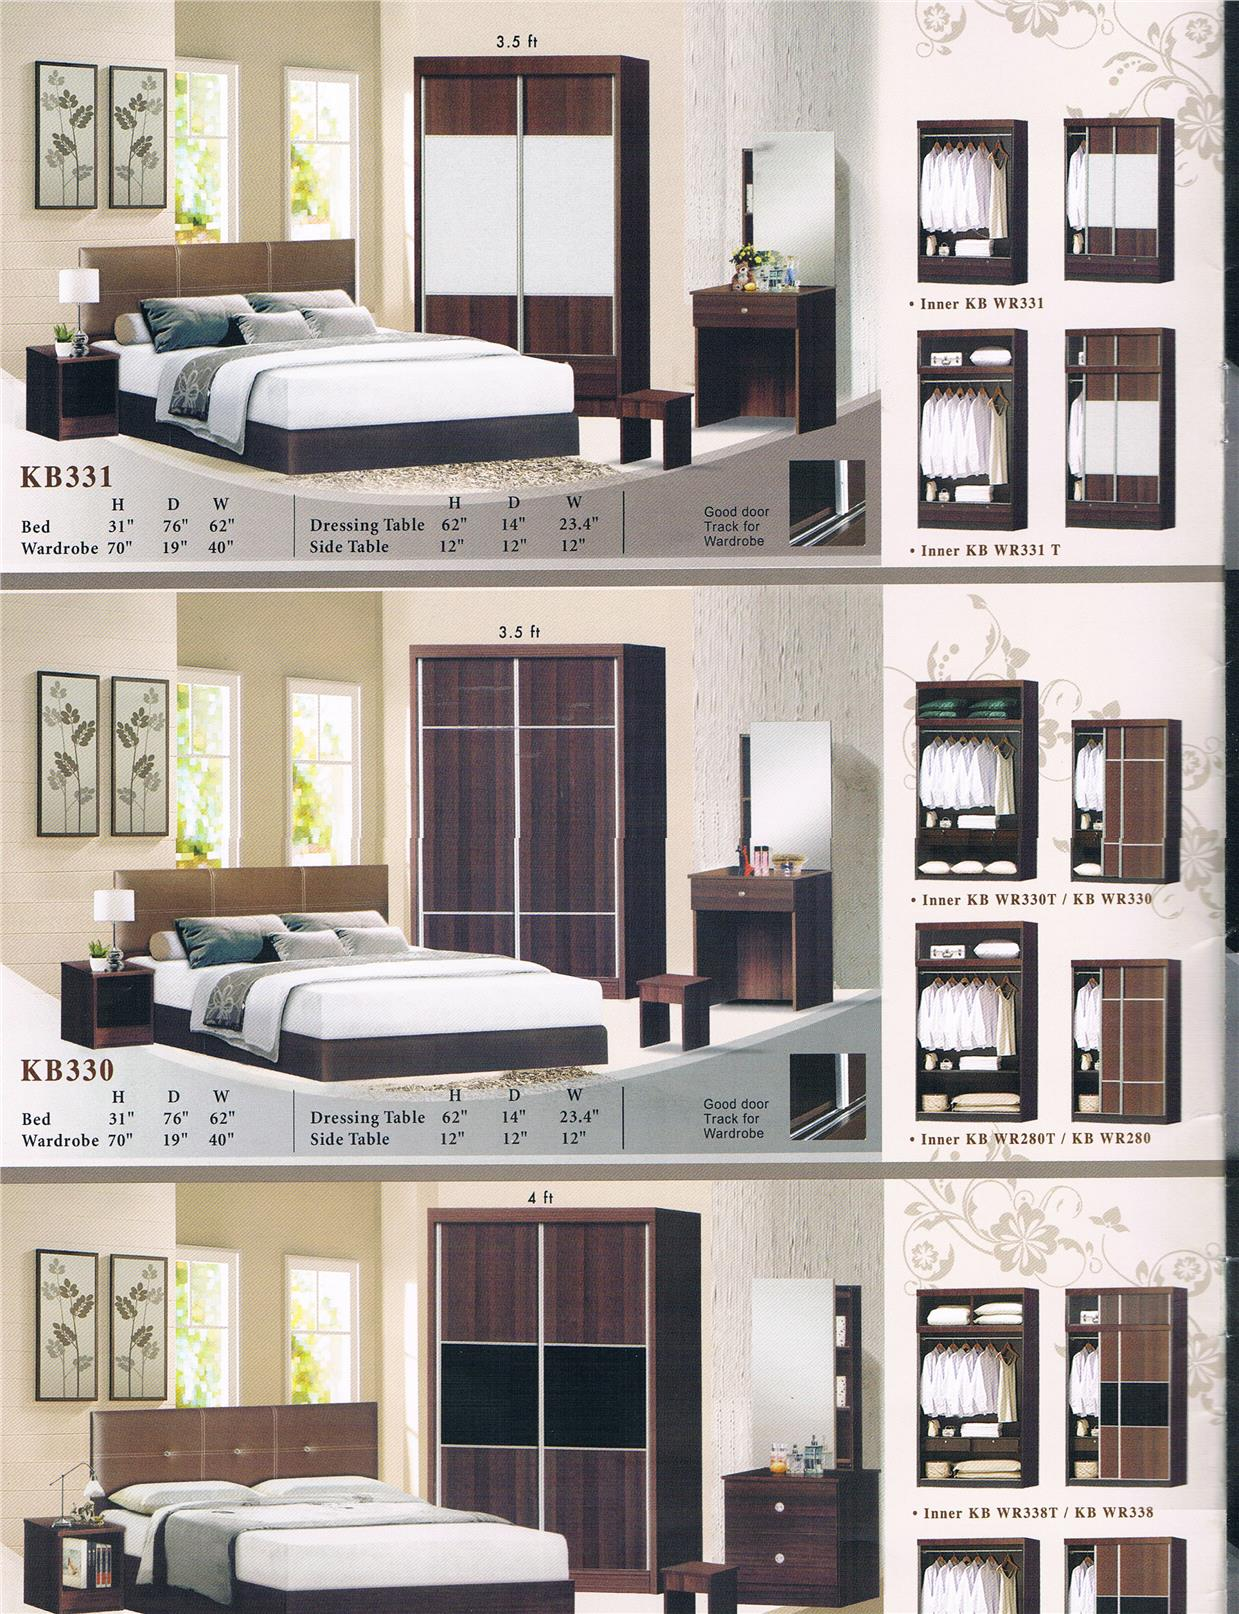 NiceHome Furniture HOT SALE With Wooden 5'bed model - BRS330